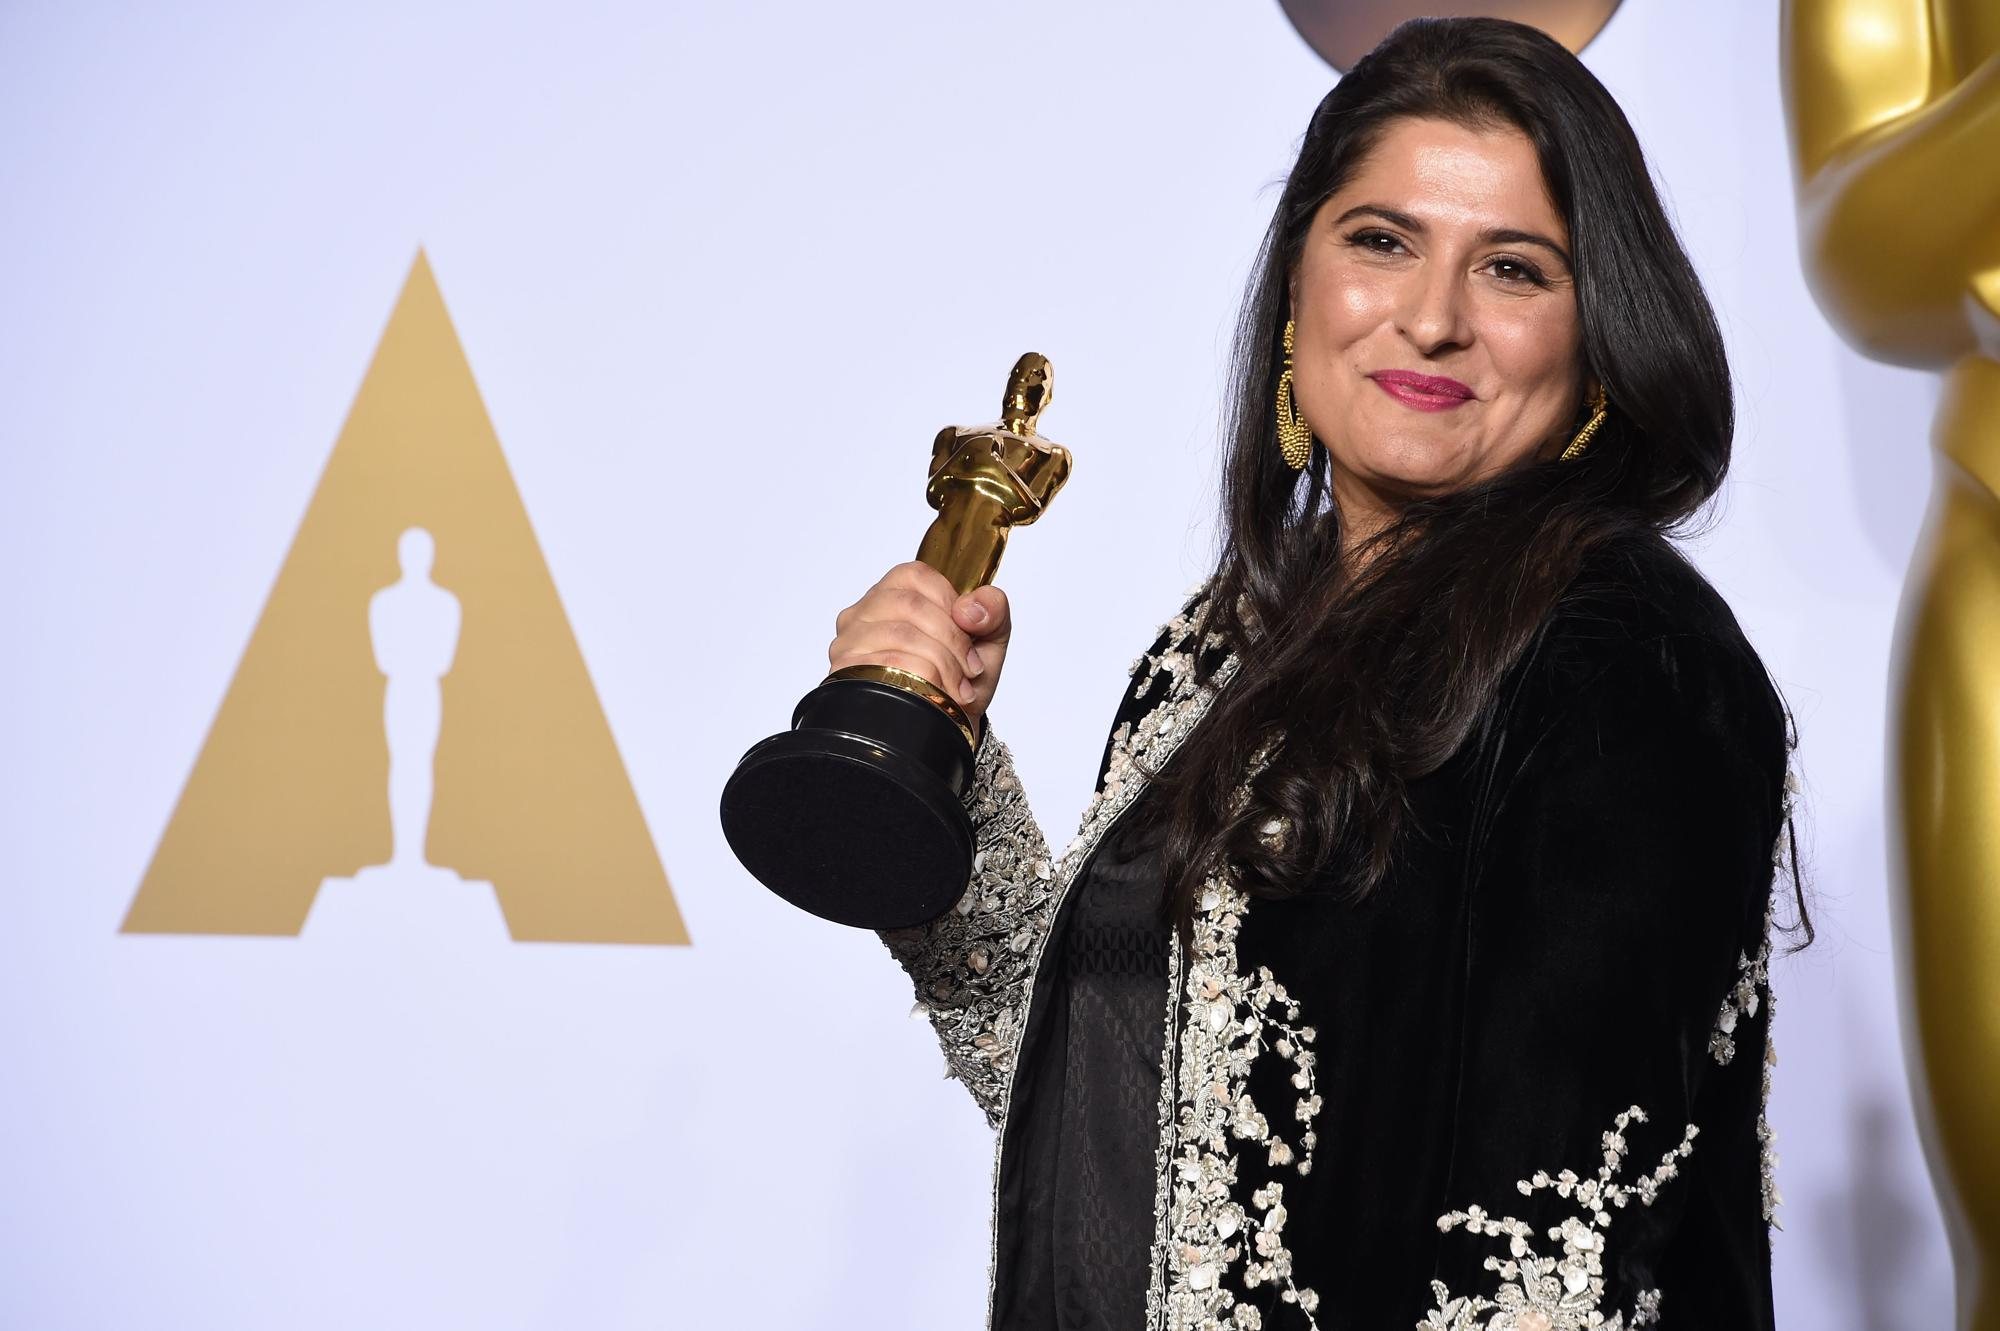 filmmaker sharmeen obaid chinoy presented with the Filmmaker sharmeen obaid-chinoy sheds light on the despicable practice of honor killings by telling one woman's story in an oscar-nominated documentary.